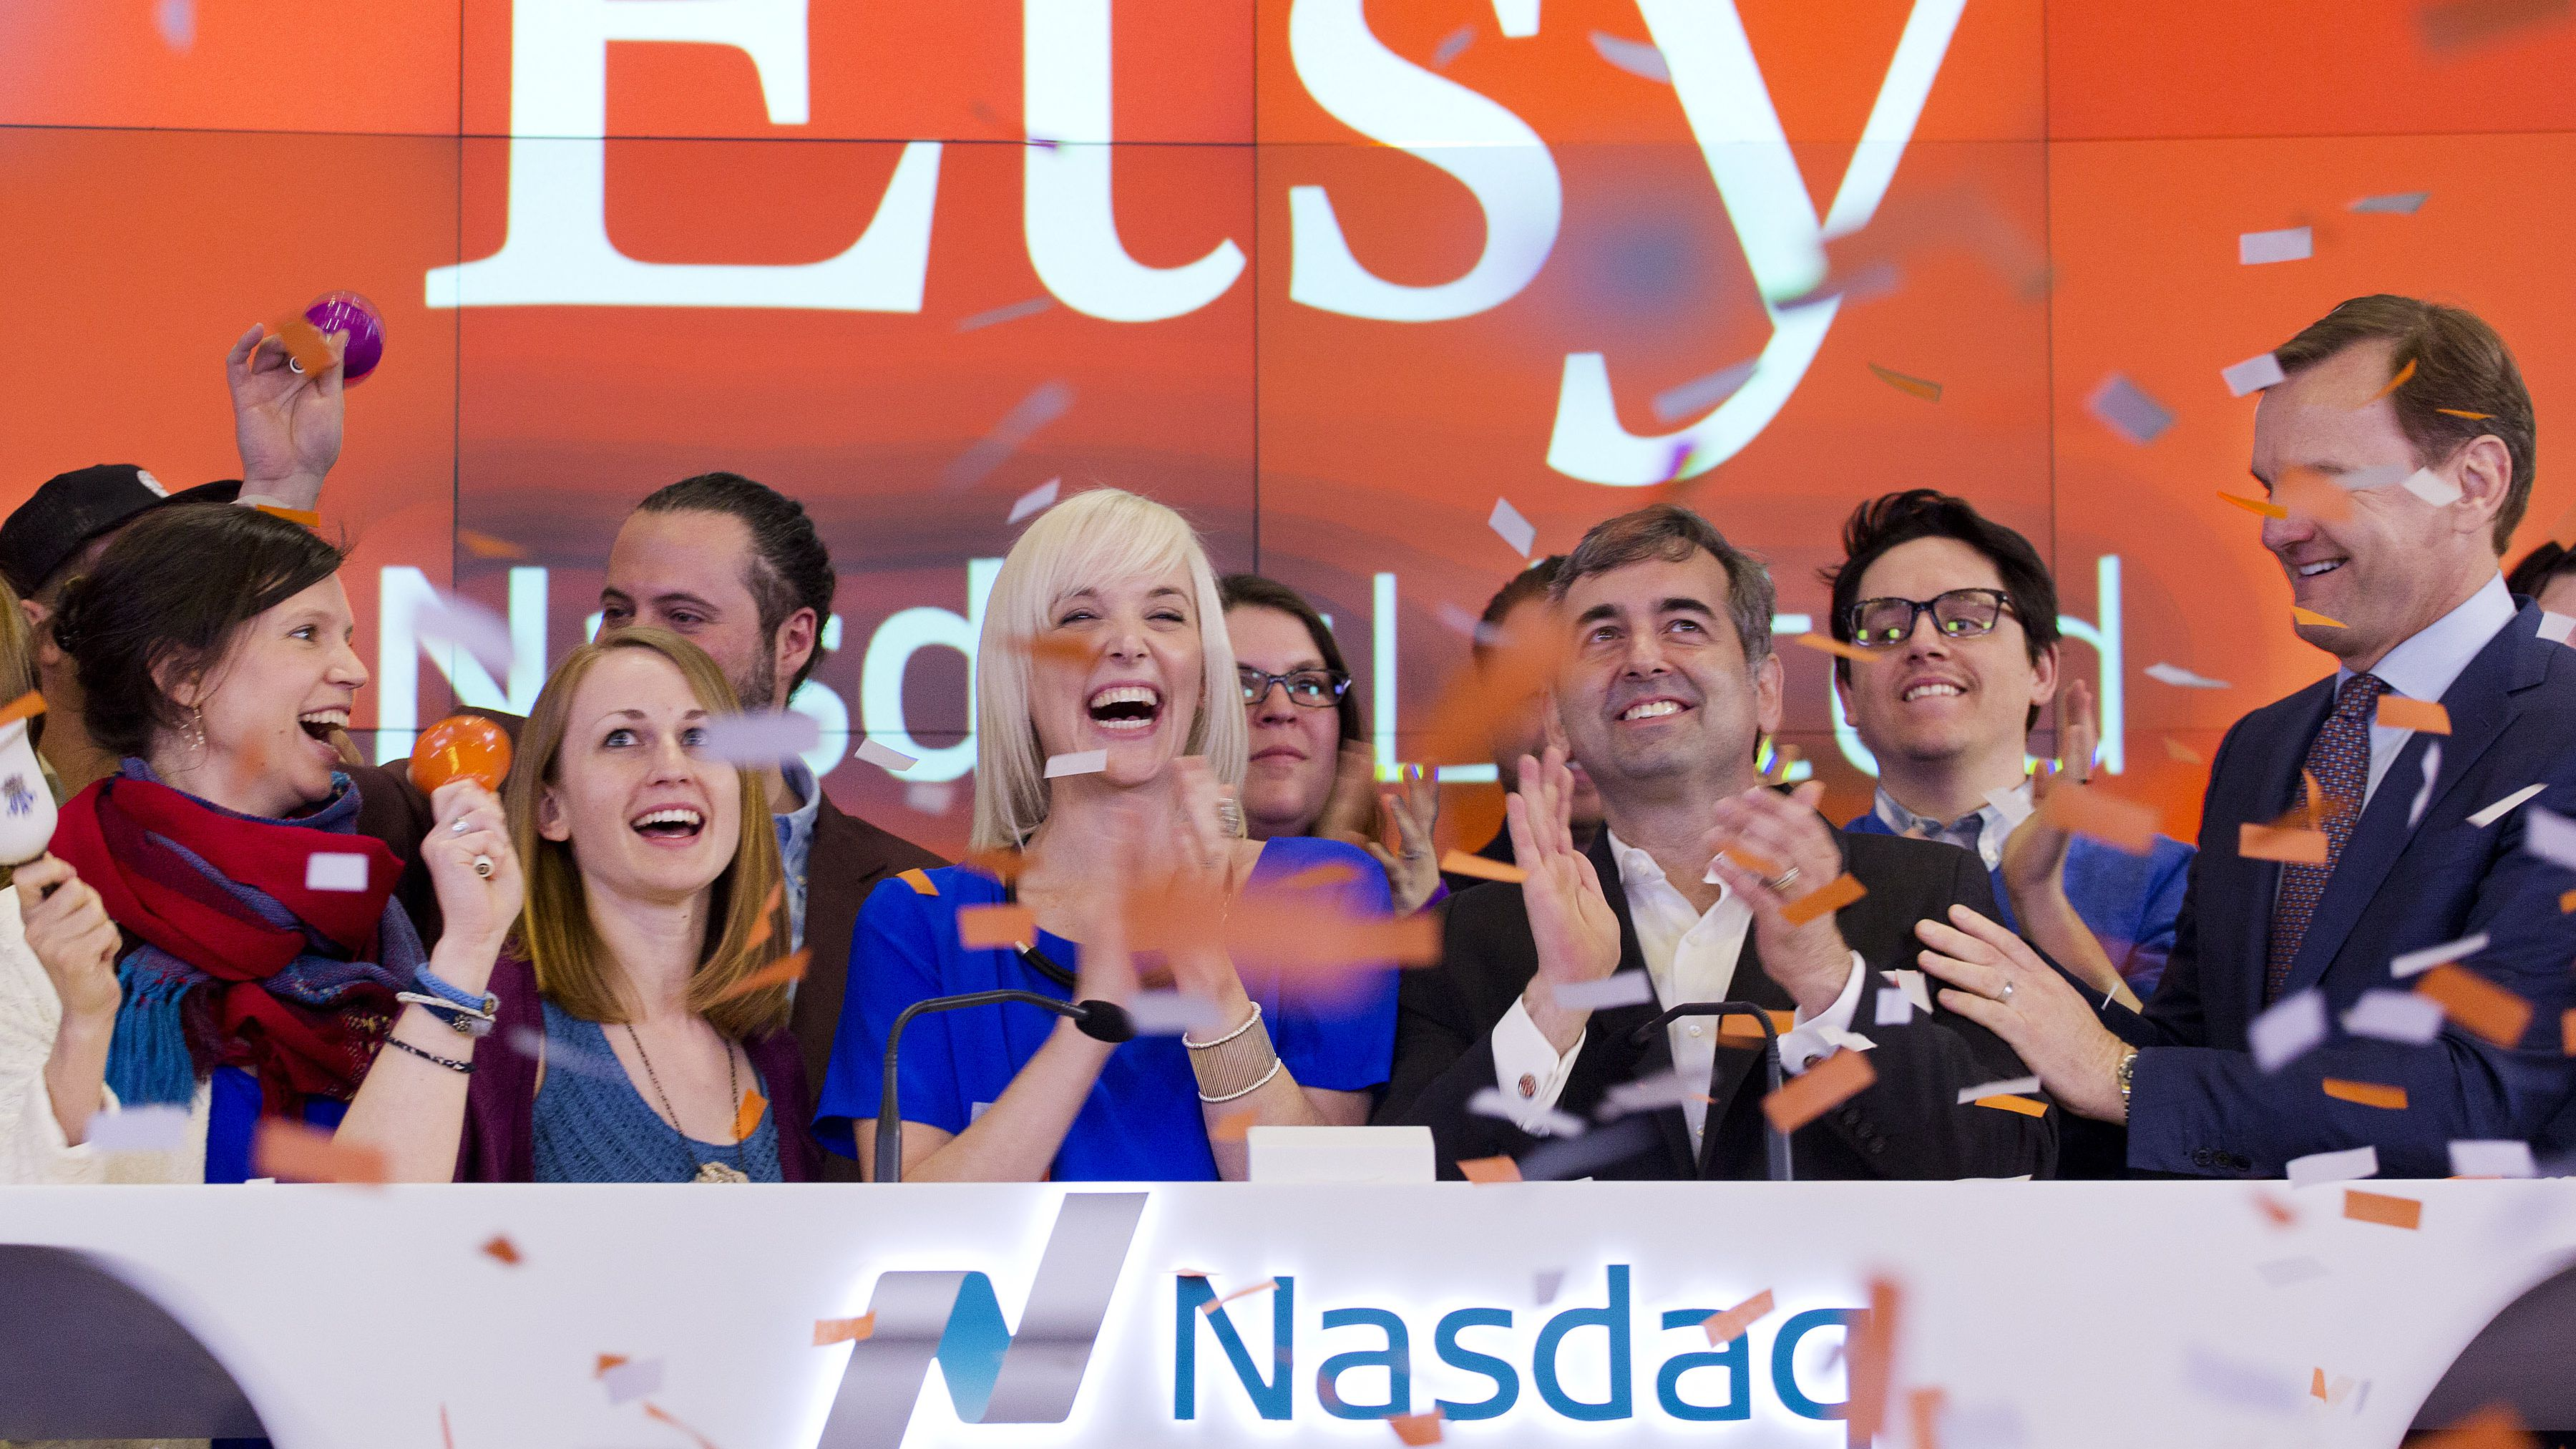 Etsy Inc's Chief Executive Officer Chad Dickerson (2nd from R) and Chief Financial Officer Kristina Salen (C) stand with Etsy Employees and Nasdaq Executive Vice President Bruce Aust (R) as they celebrate Etsy's initial public offering (IPO) at the Nasdaq market site in New York April 16, 2015. Etsy's initial public offering has been priced at $16 per share, a market source told Reuters, valuing the online seller of handmade goods and craft supplies at about $1.78 billion. REUTERS/Mike Segar